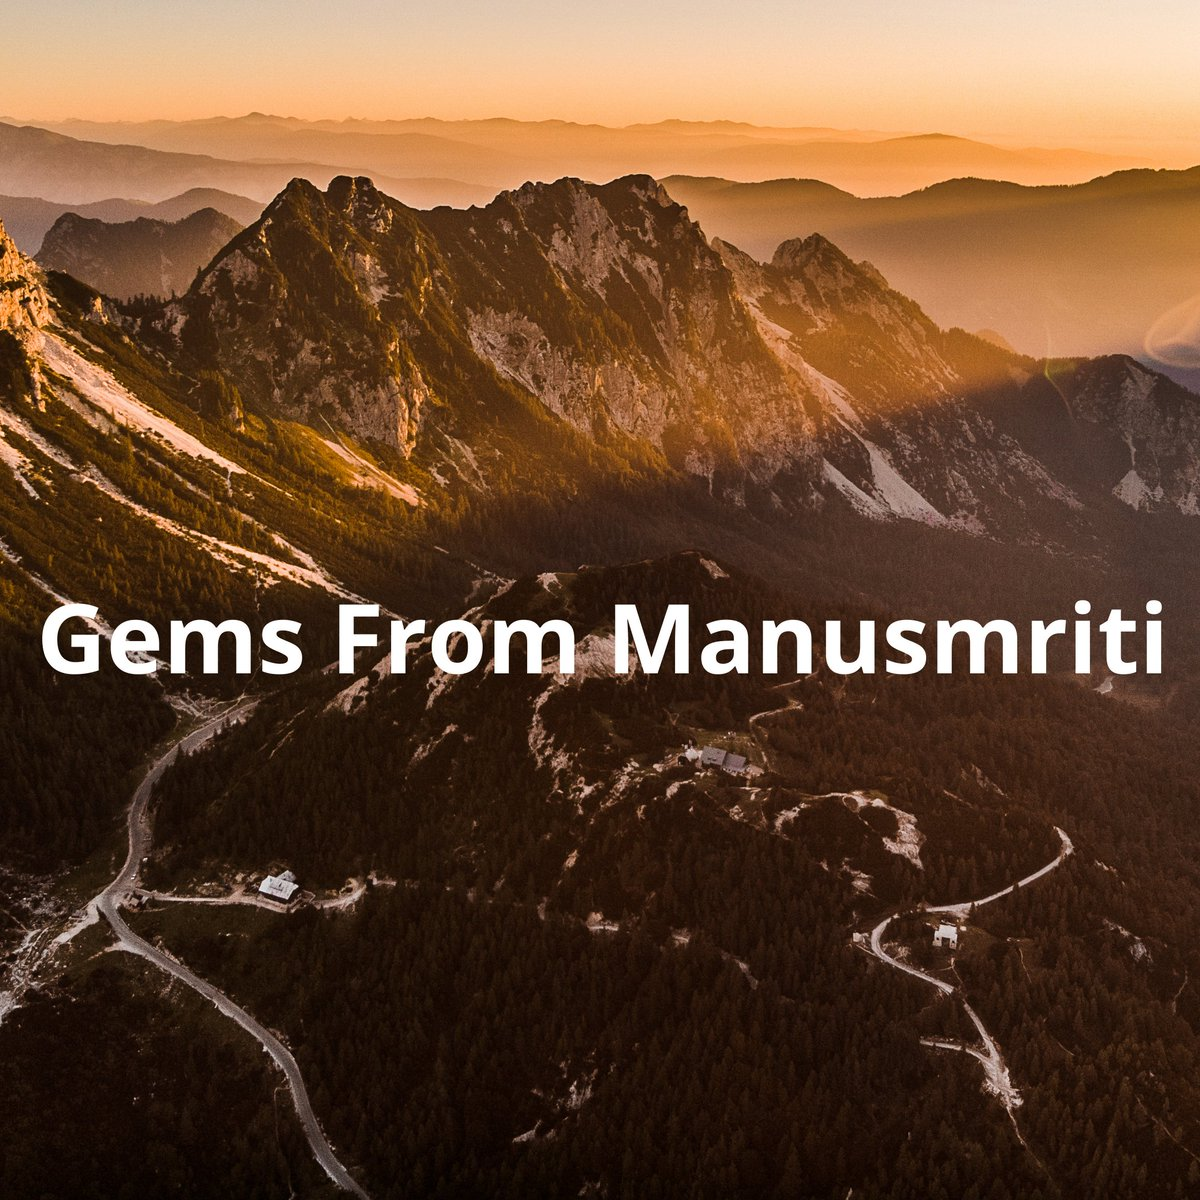 Manusmriti is a gift to mankind, a book with beautiful teachings, in this thread I will list a few of those teachings by Maharishi manu. Read them to know what Manu ji believed in, his basic philosophy, and how Manusmriti is a precious gift to mankind. #Manusmriti #Manu